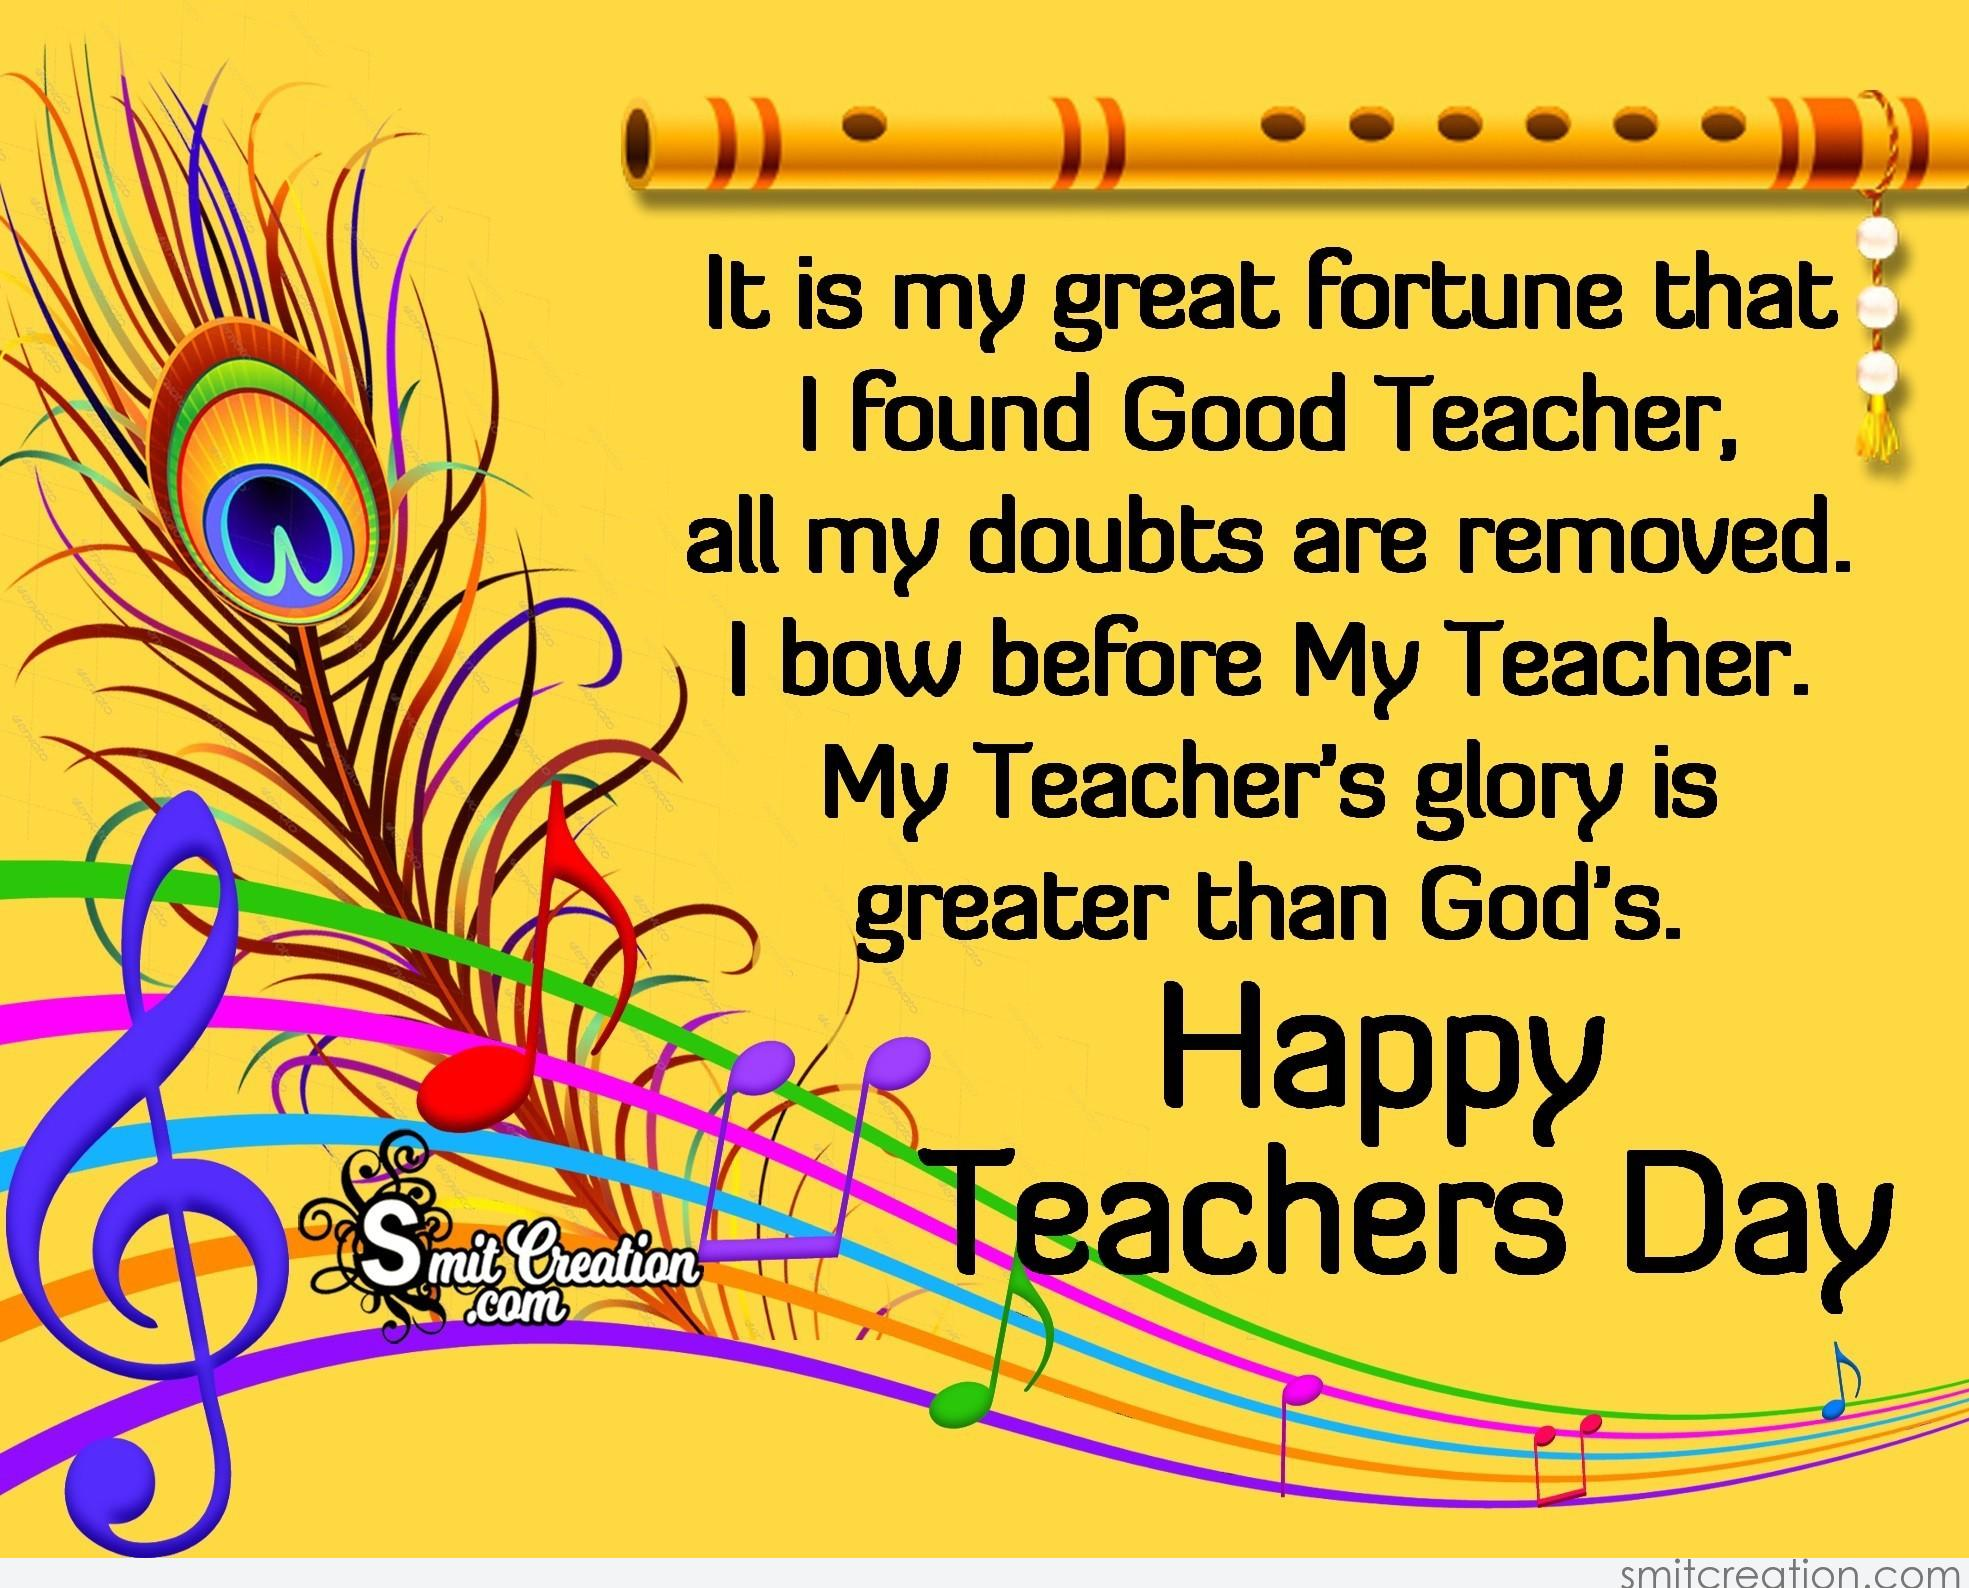 Teachers Day Pictures And Graphics Smitcreation